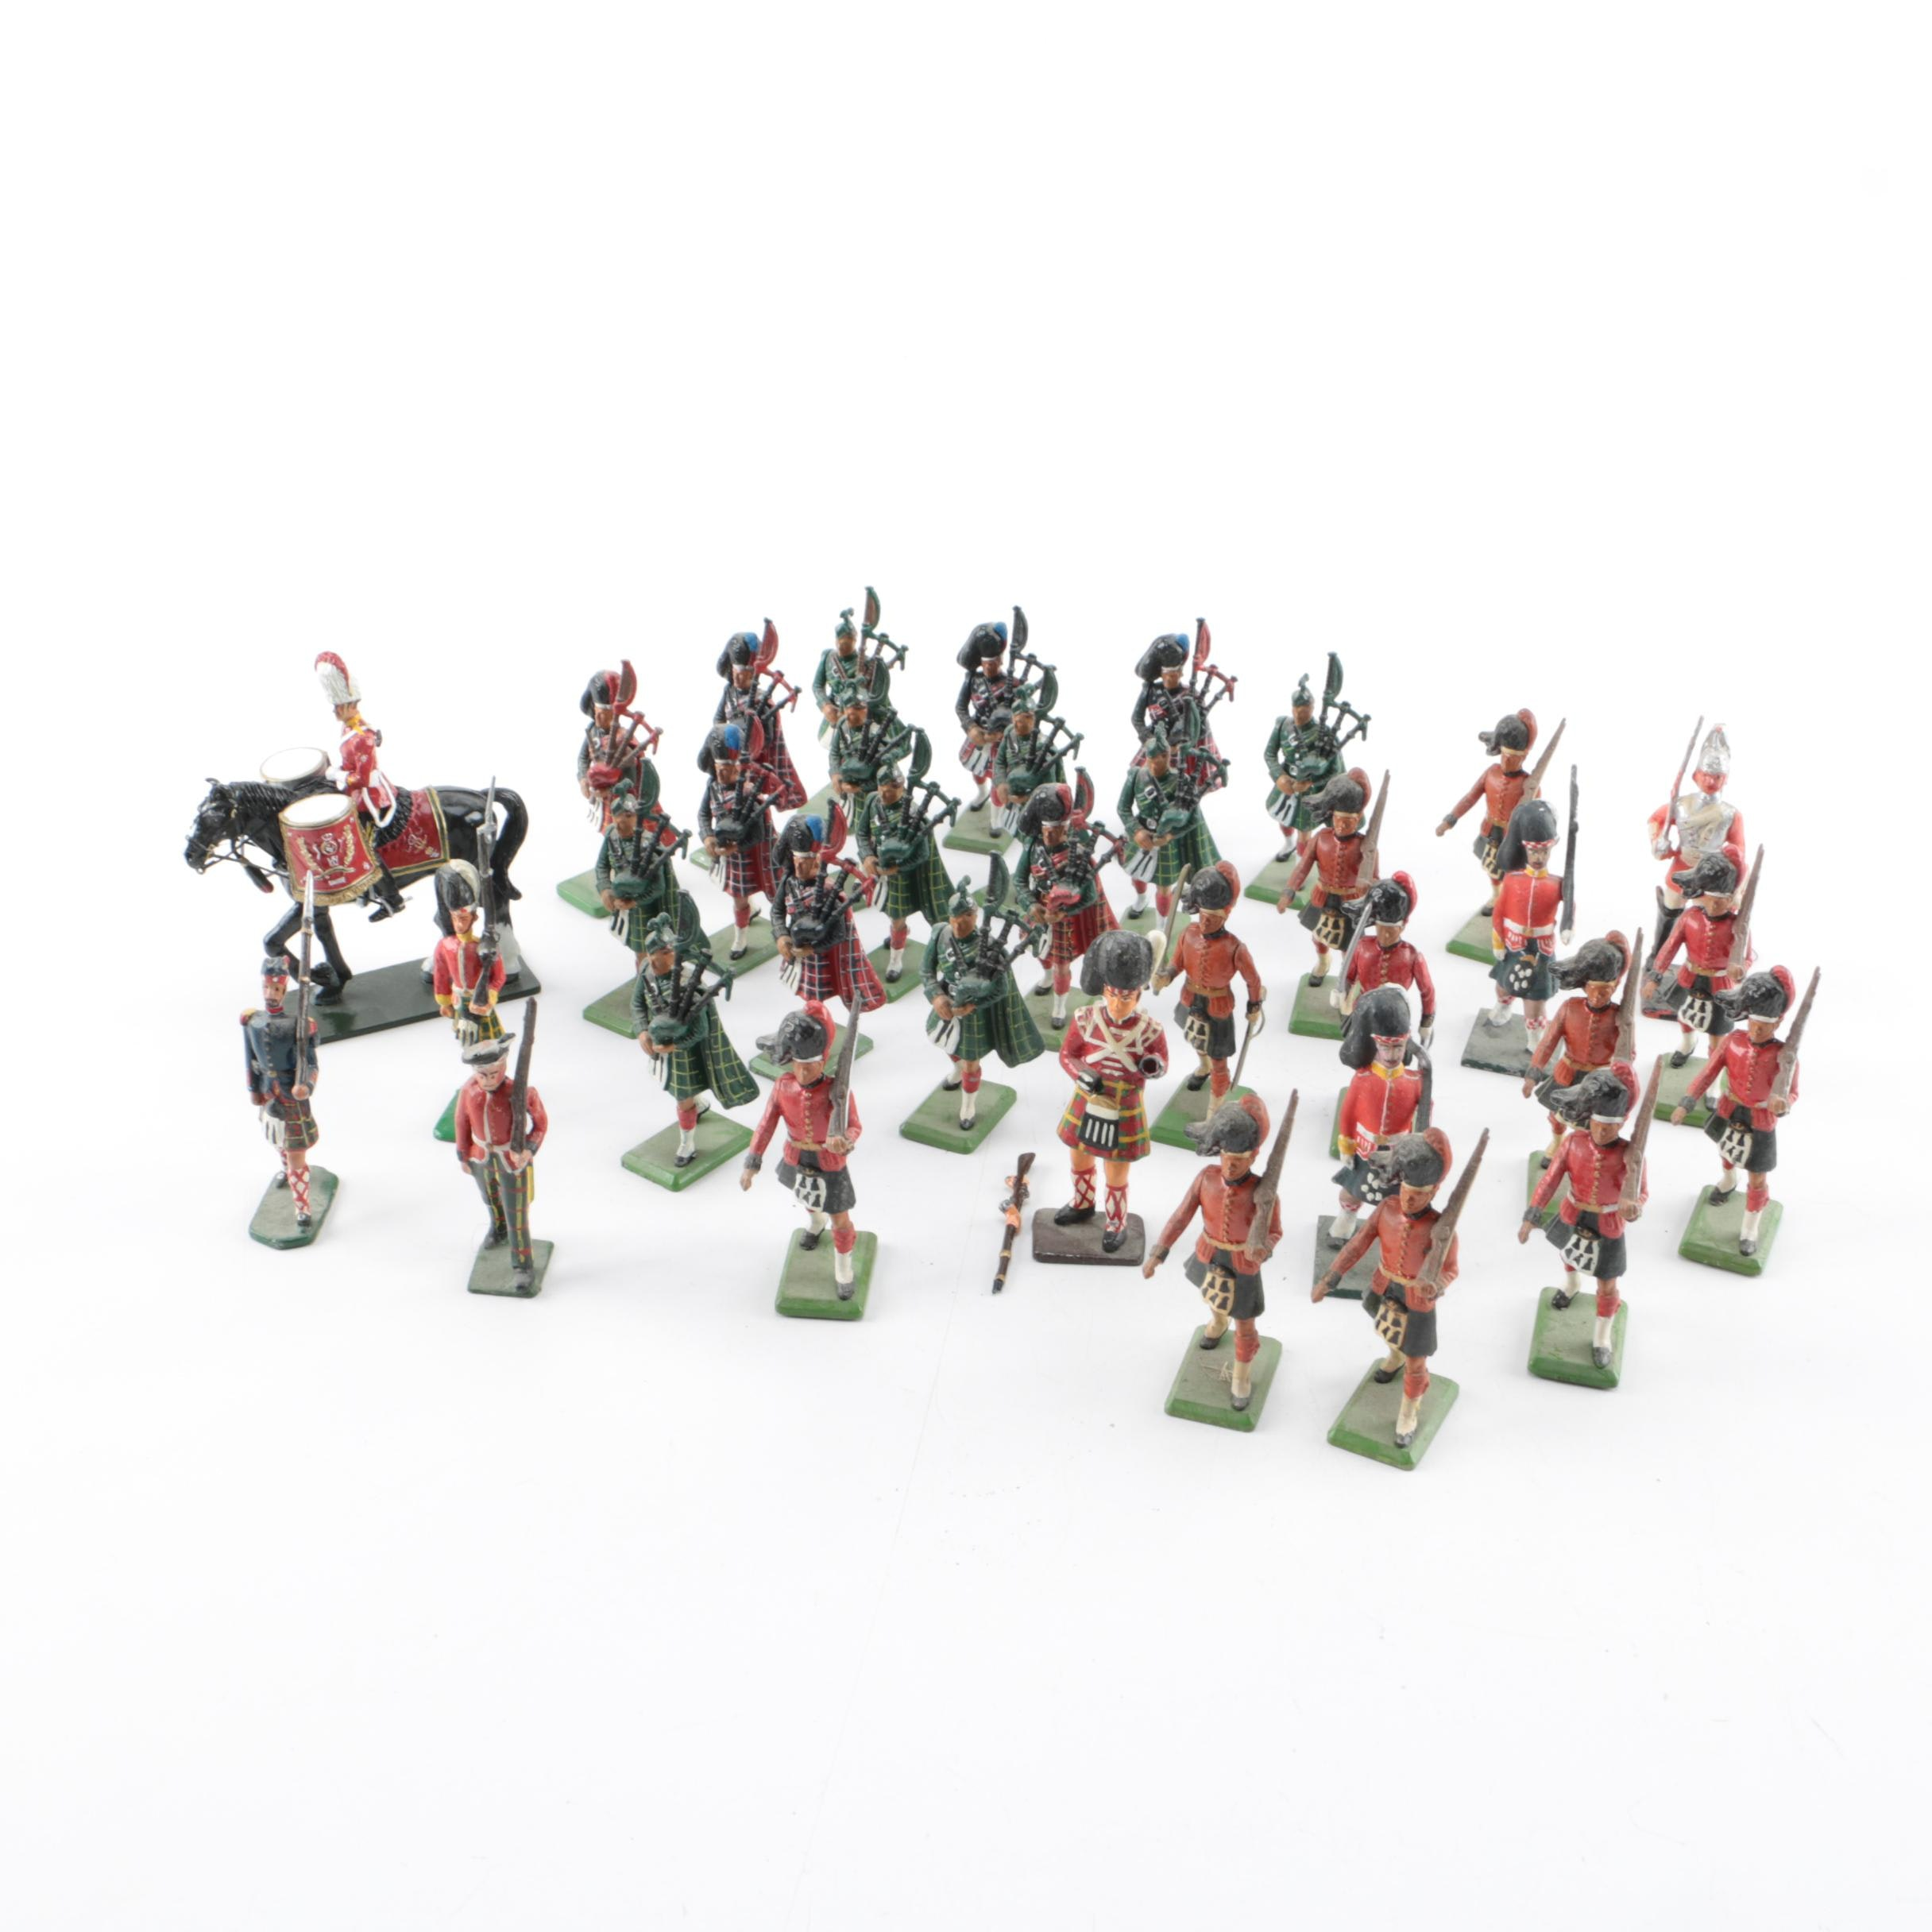 Collection of Metal Toy British Soldiers